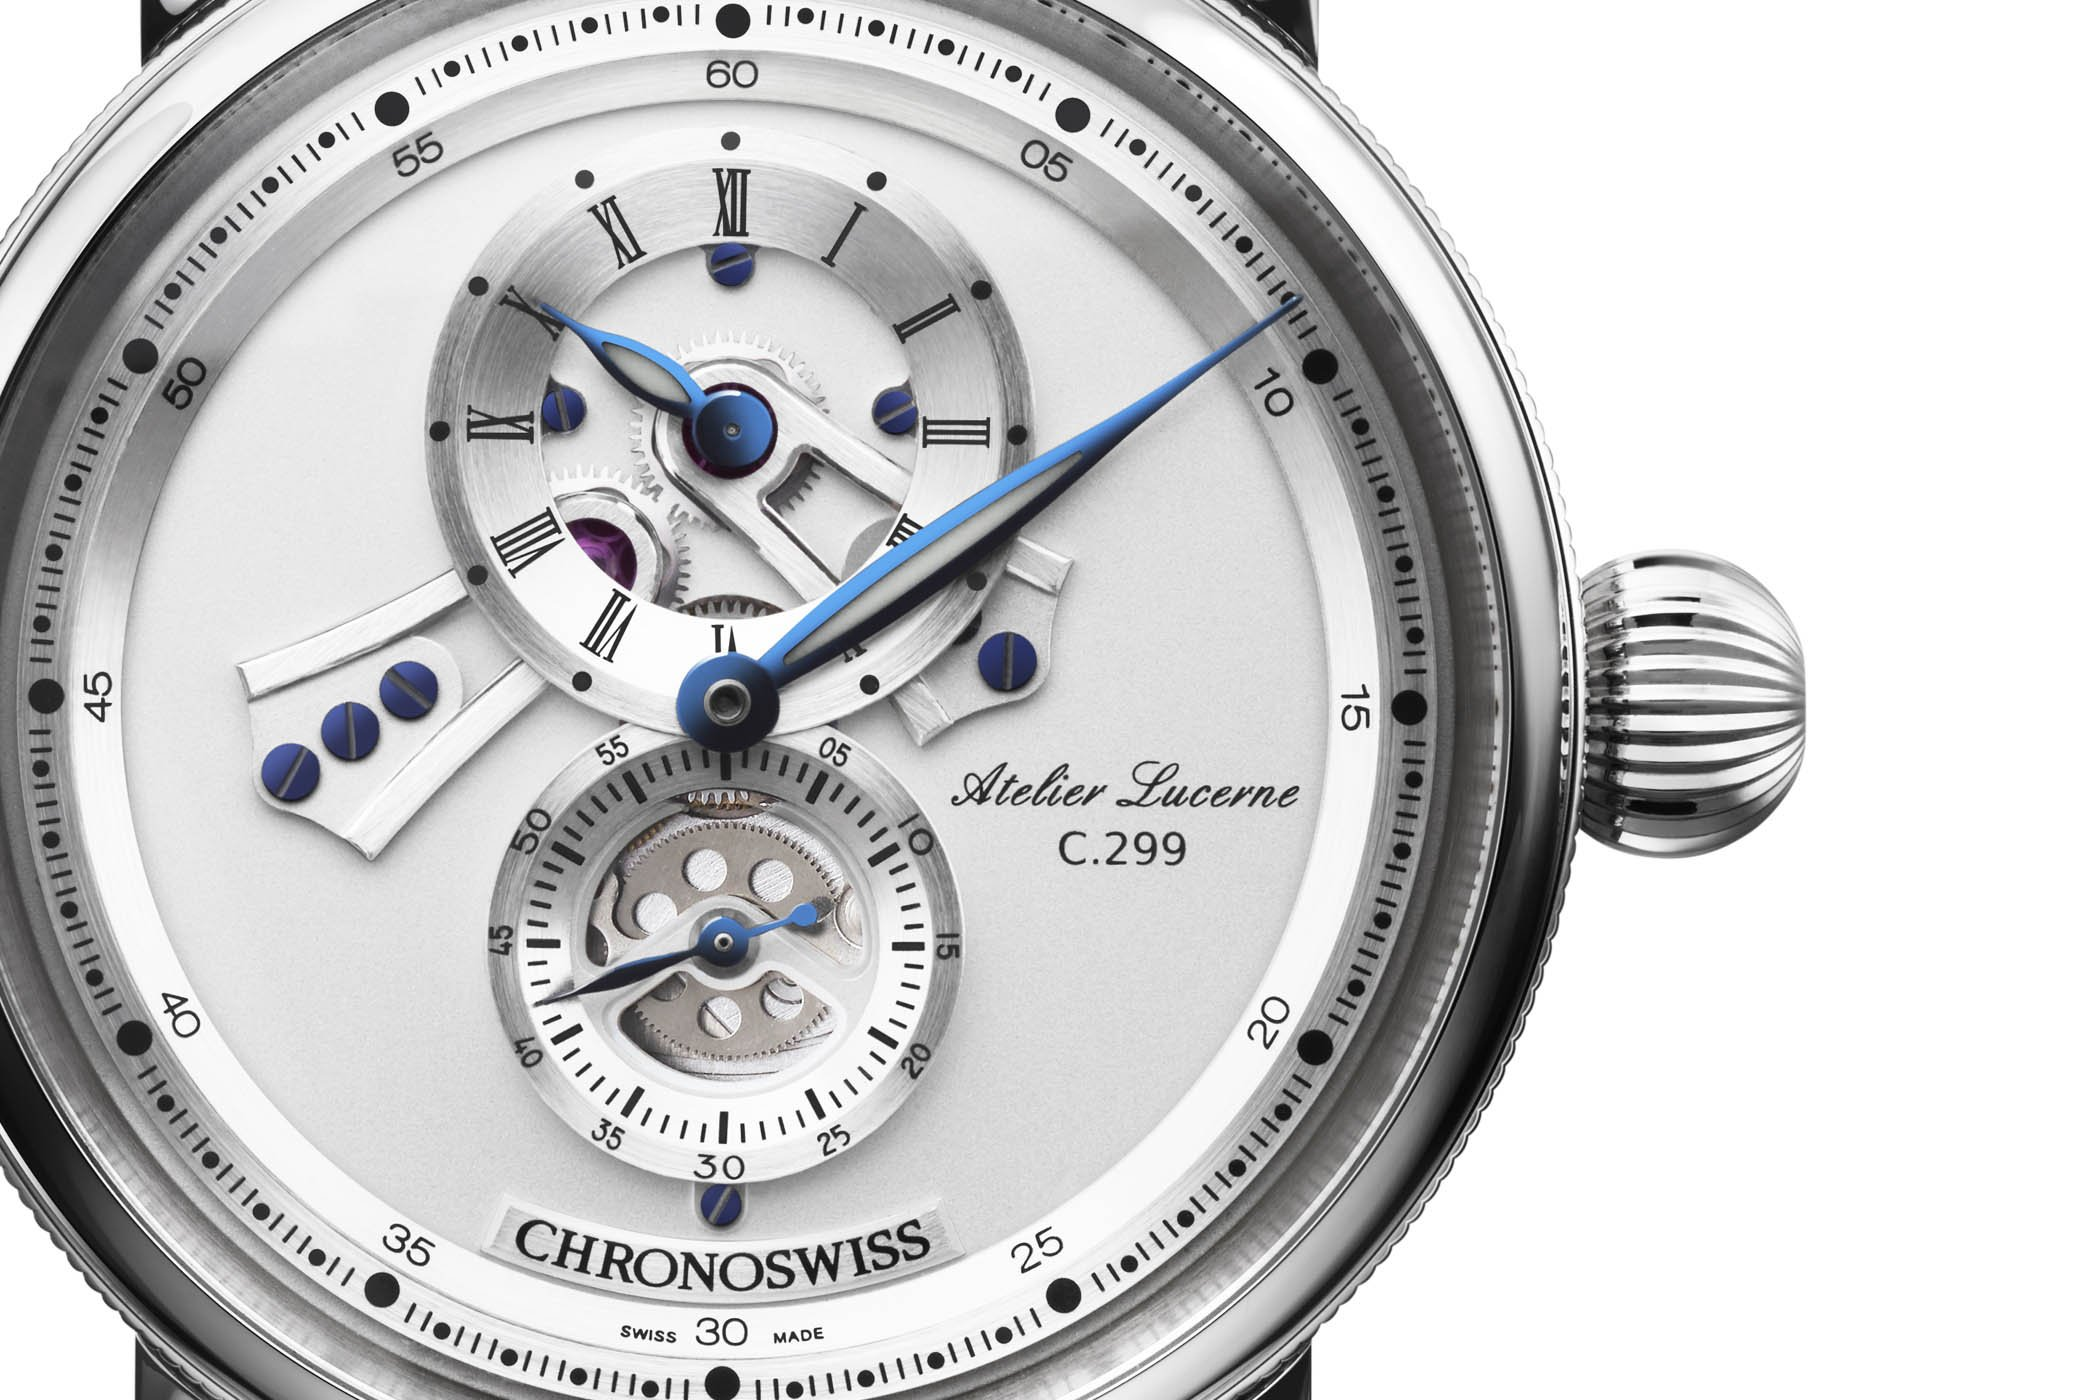 The dial of the Chronoswiss Flying Regulator Open Gear